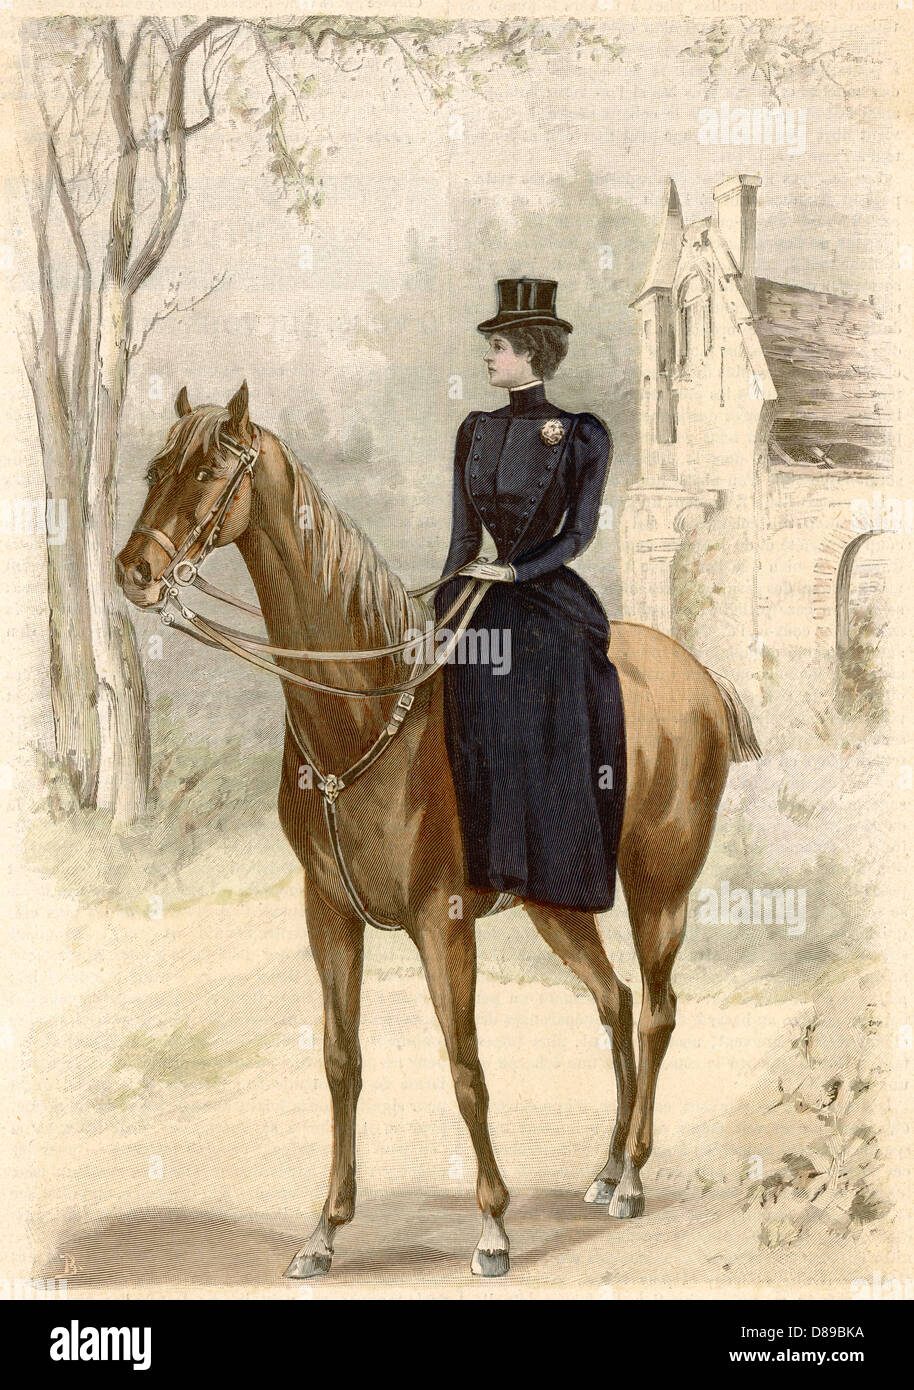 Riding Habit 1899 - Stock Image